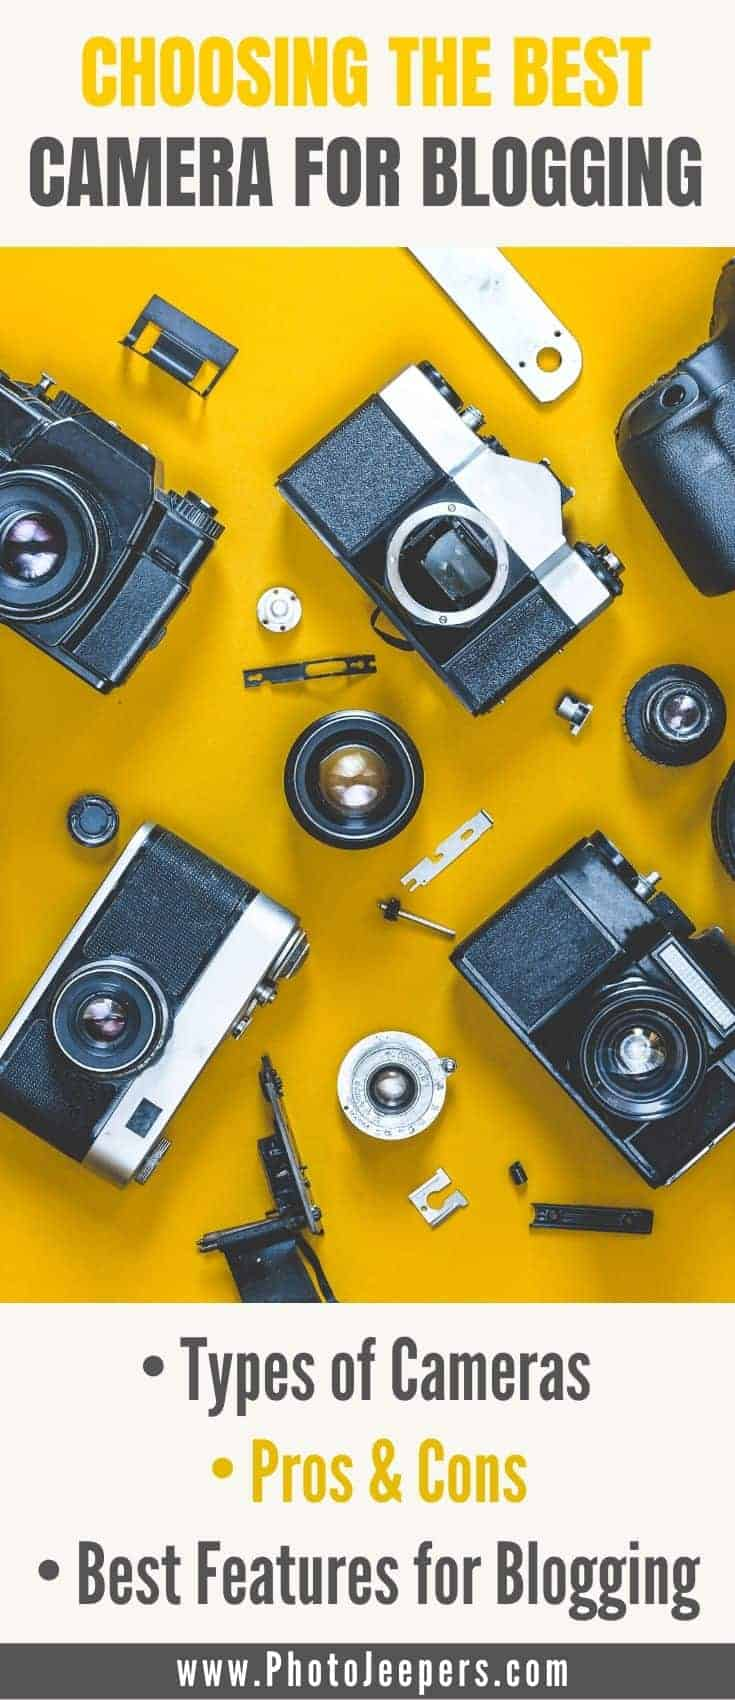 Choosing the best camera for blogging. We talk about types of cameras, pros and cons for each type of camera, specifications and features for each type of camera, and our top picks for each type of camera. #photography #blogging #cameragear #photojeepers